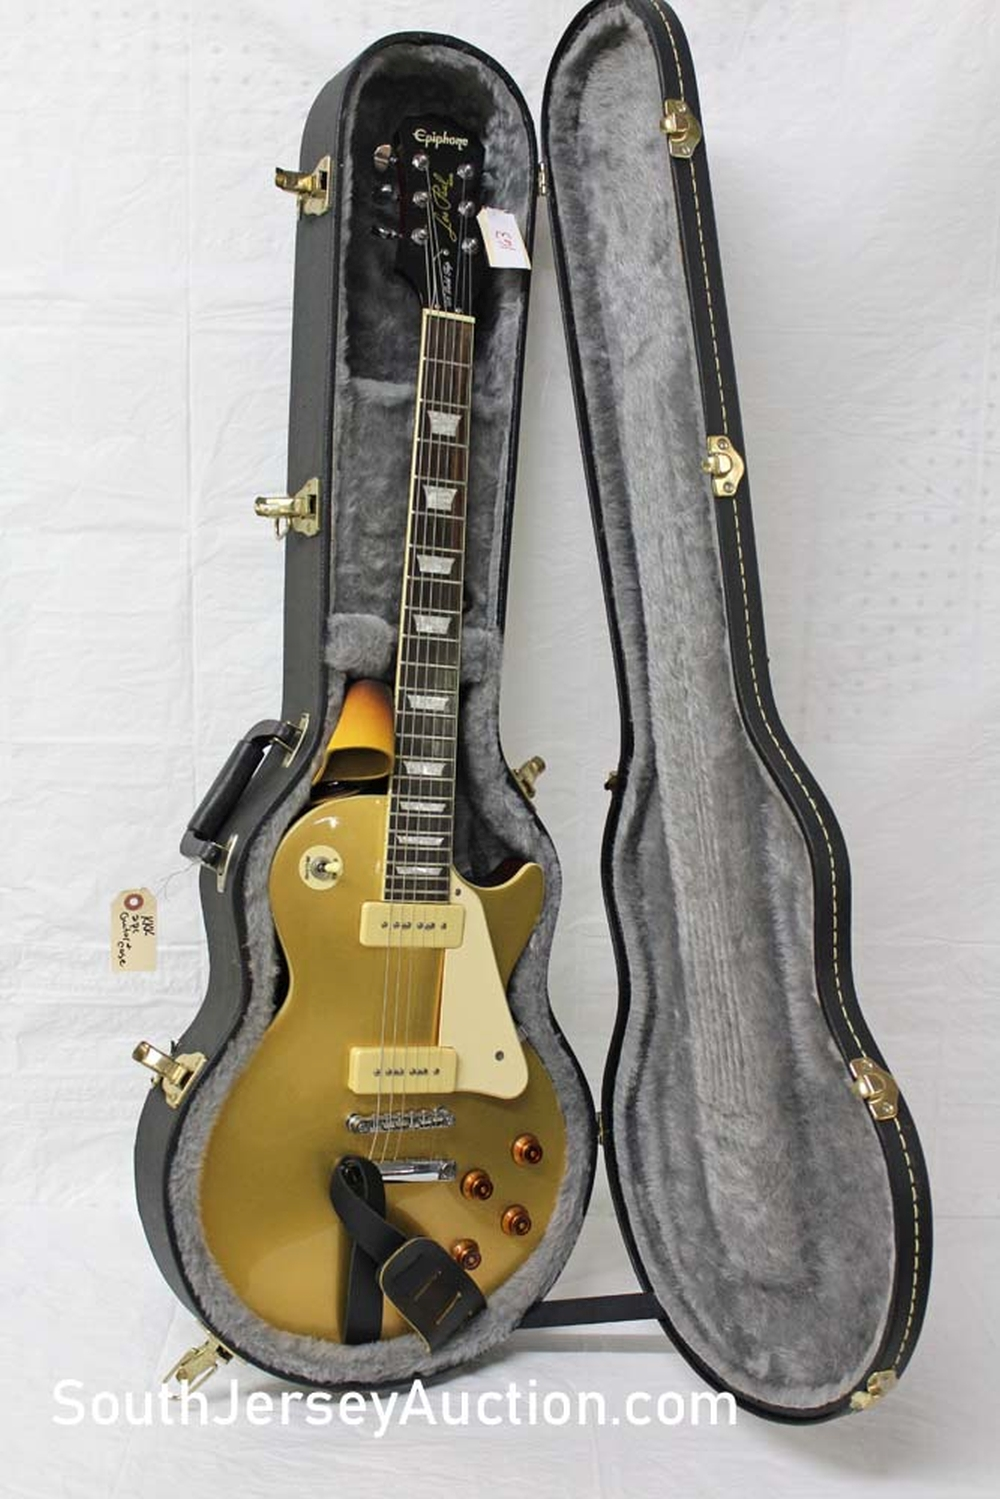 2006 Epiphone 1956 gold top color, reissue P90, grover tuners, s/n ee061216027 very good condition